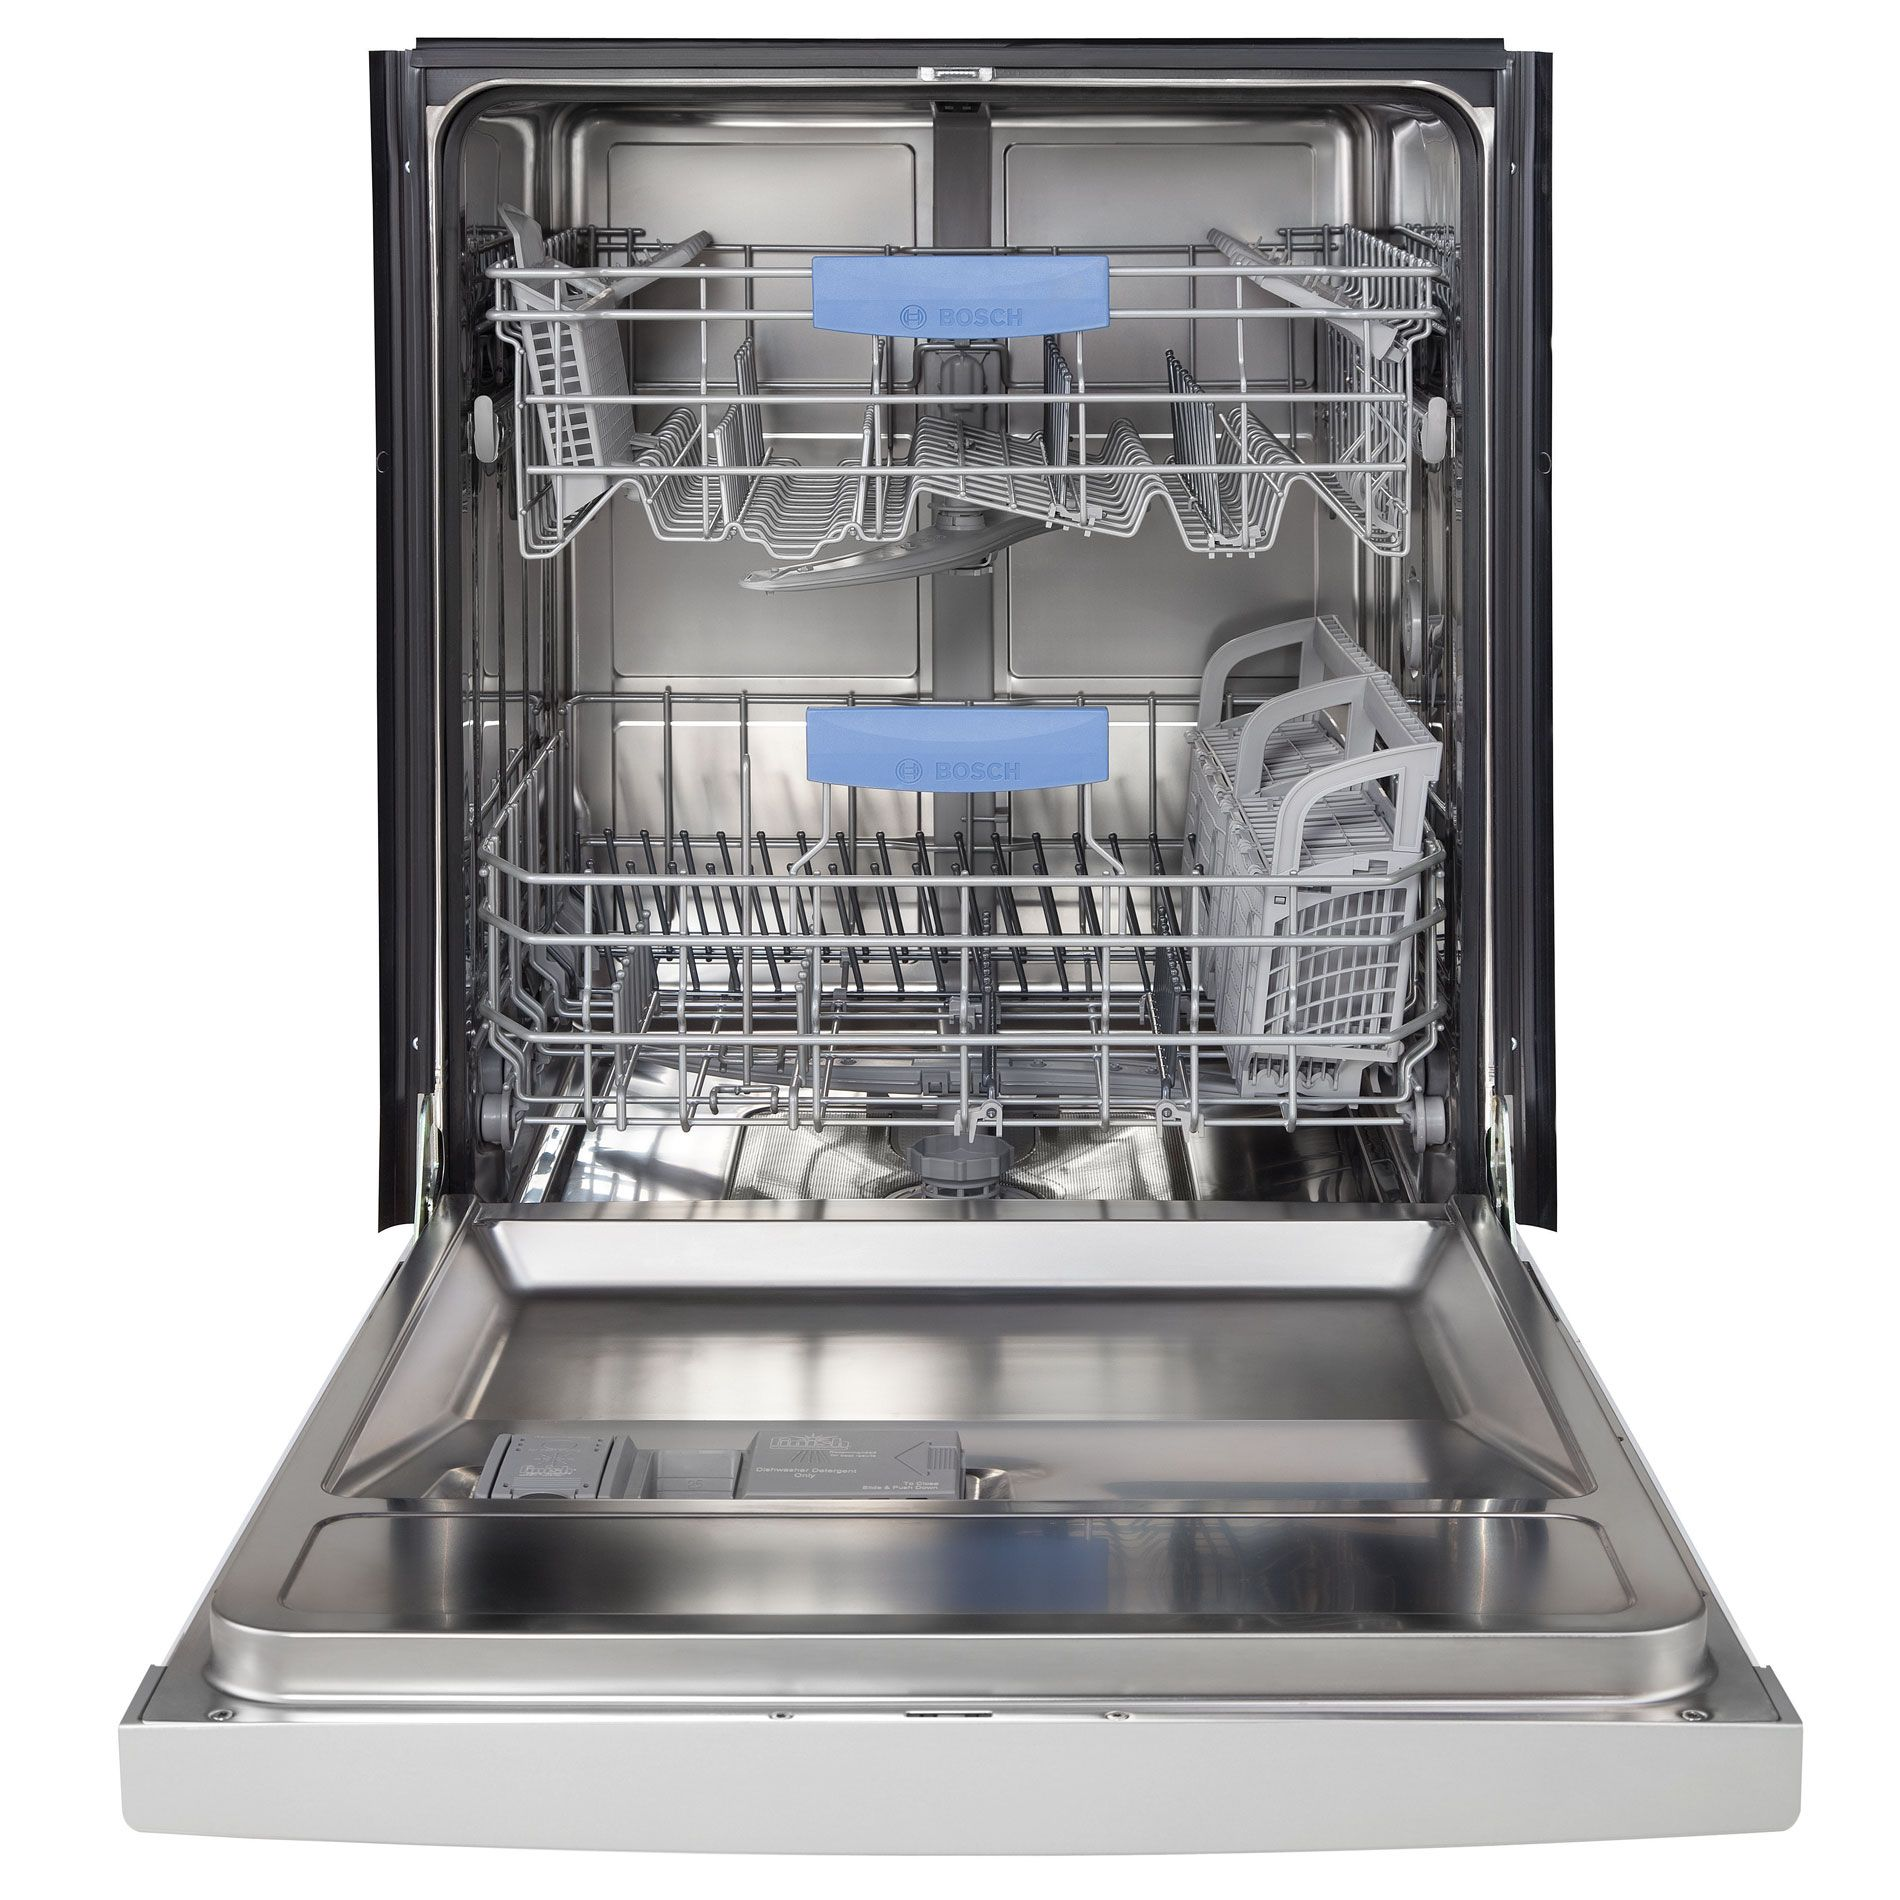 "Bosch 24"" Built-In Dishwasher - Stainless Steel"